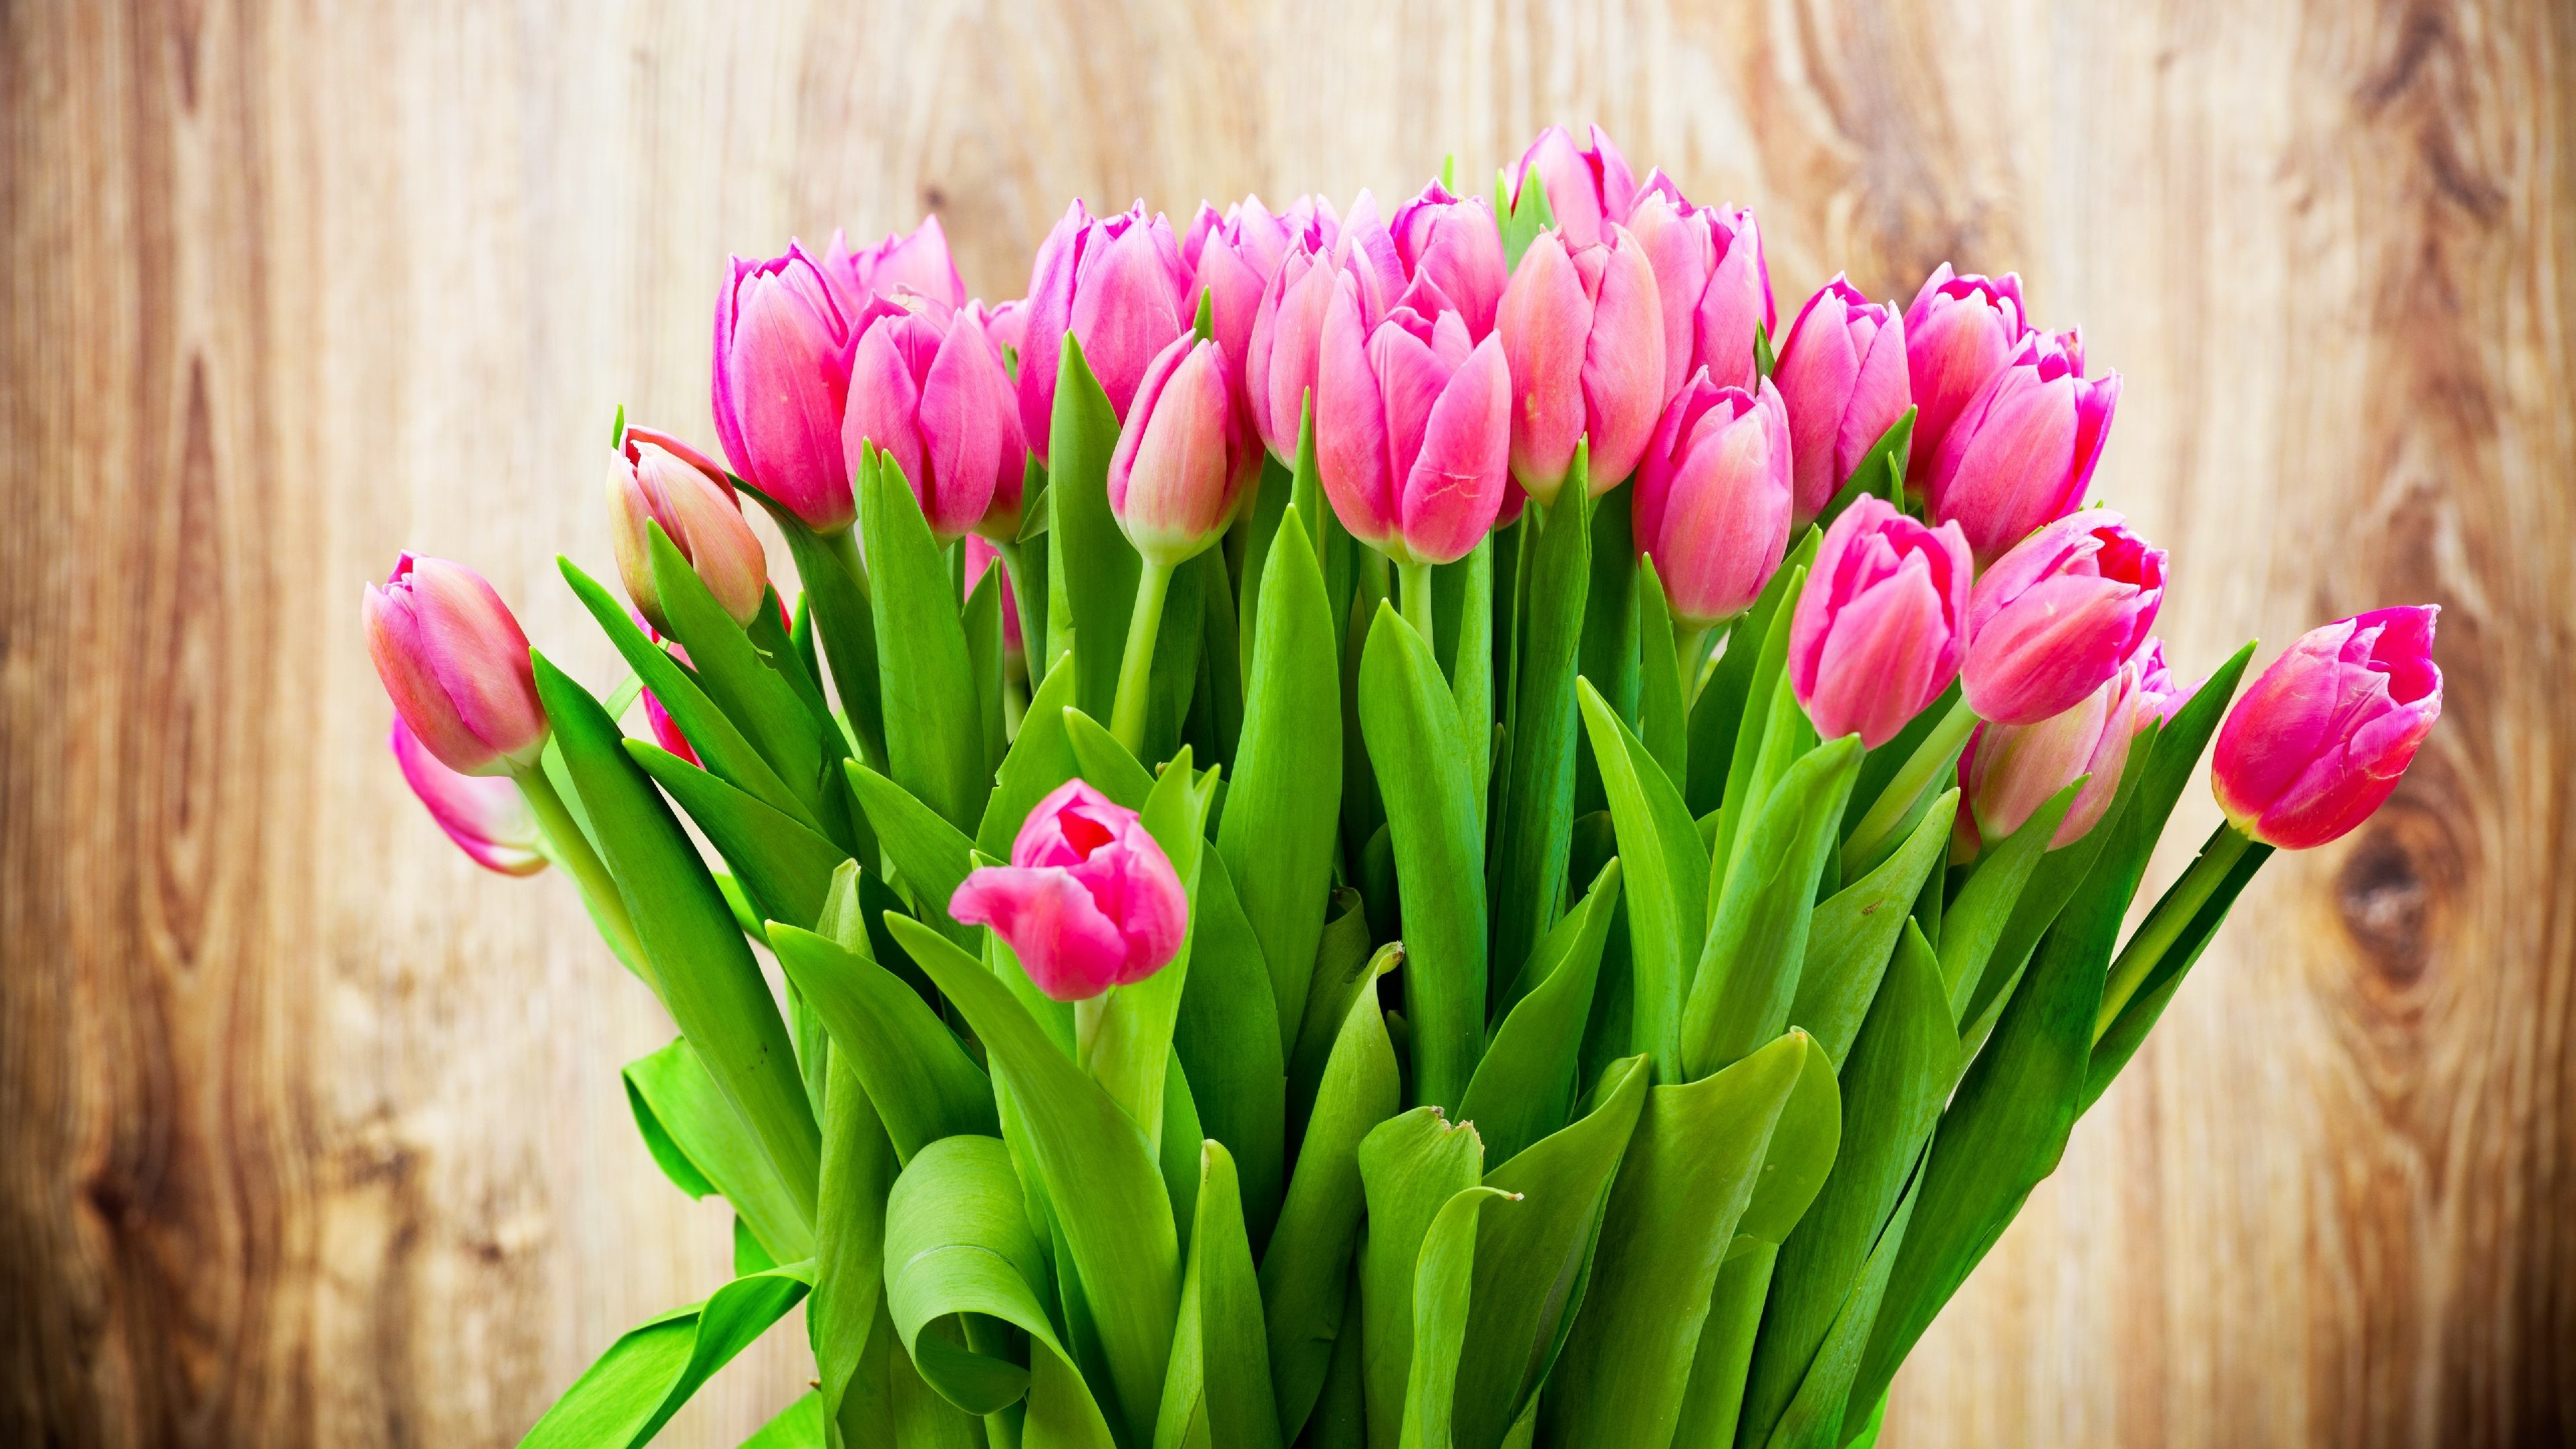 Tulips HD Backgrounds for PC